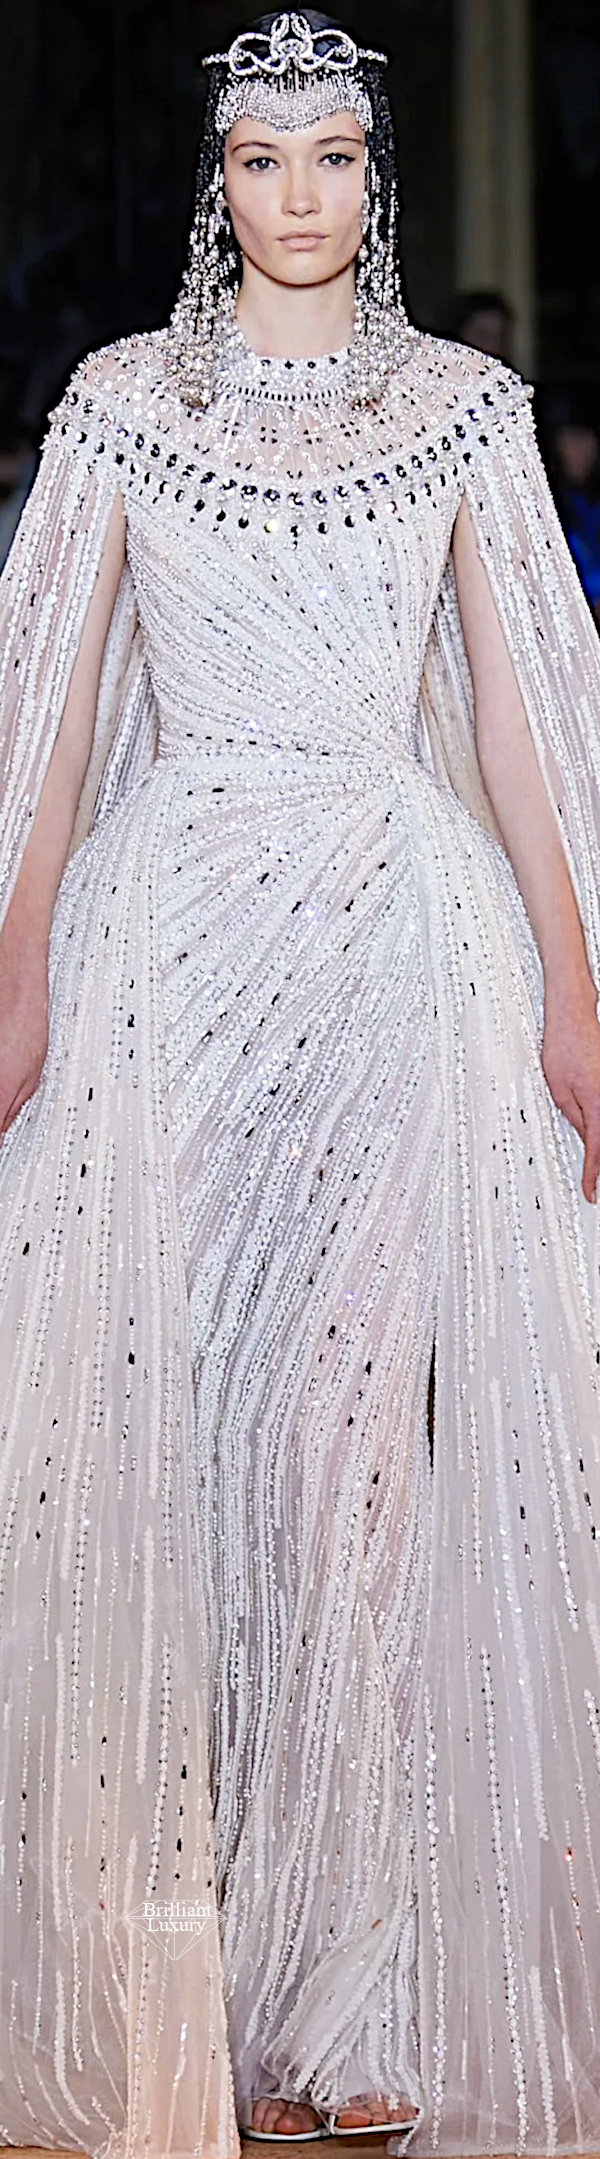 Zuhair Murad Spring 2020 Couture Egyptian Embroidered White Gown #fashion